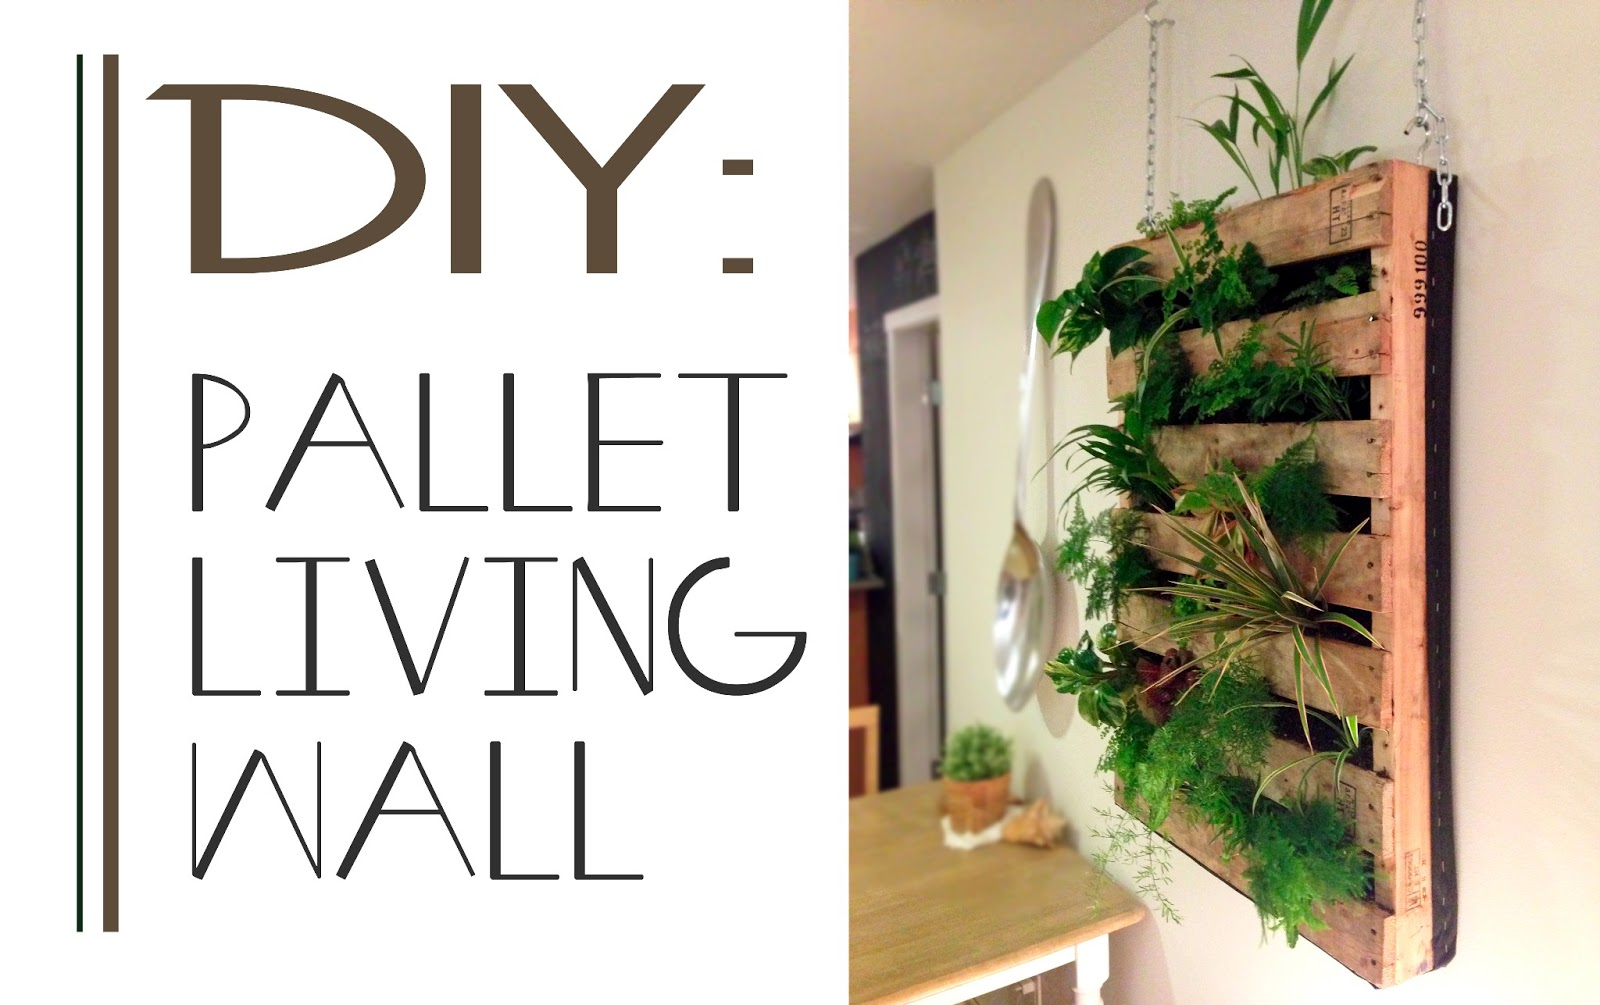 The Brew : DIY Pallet Living Wall